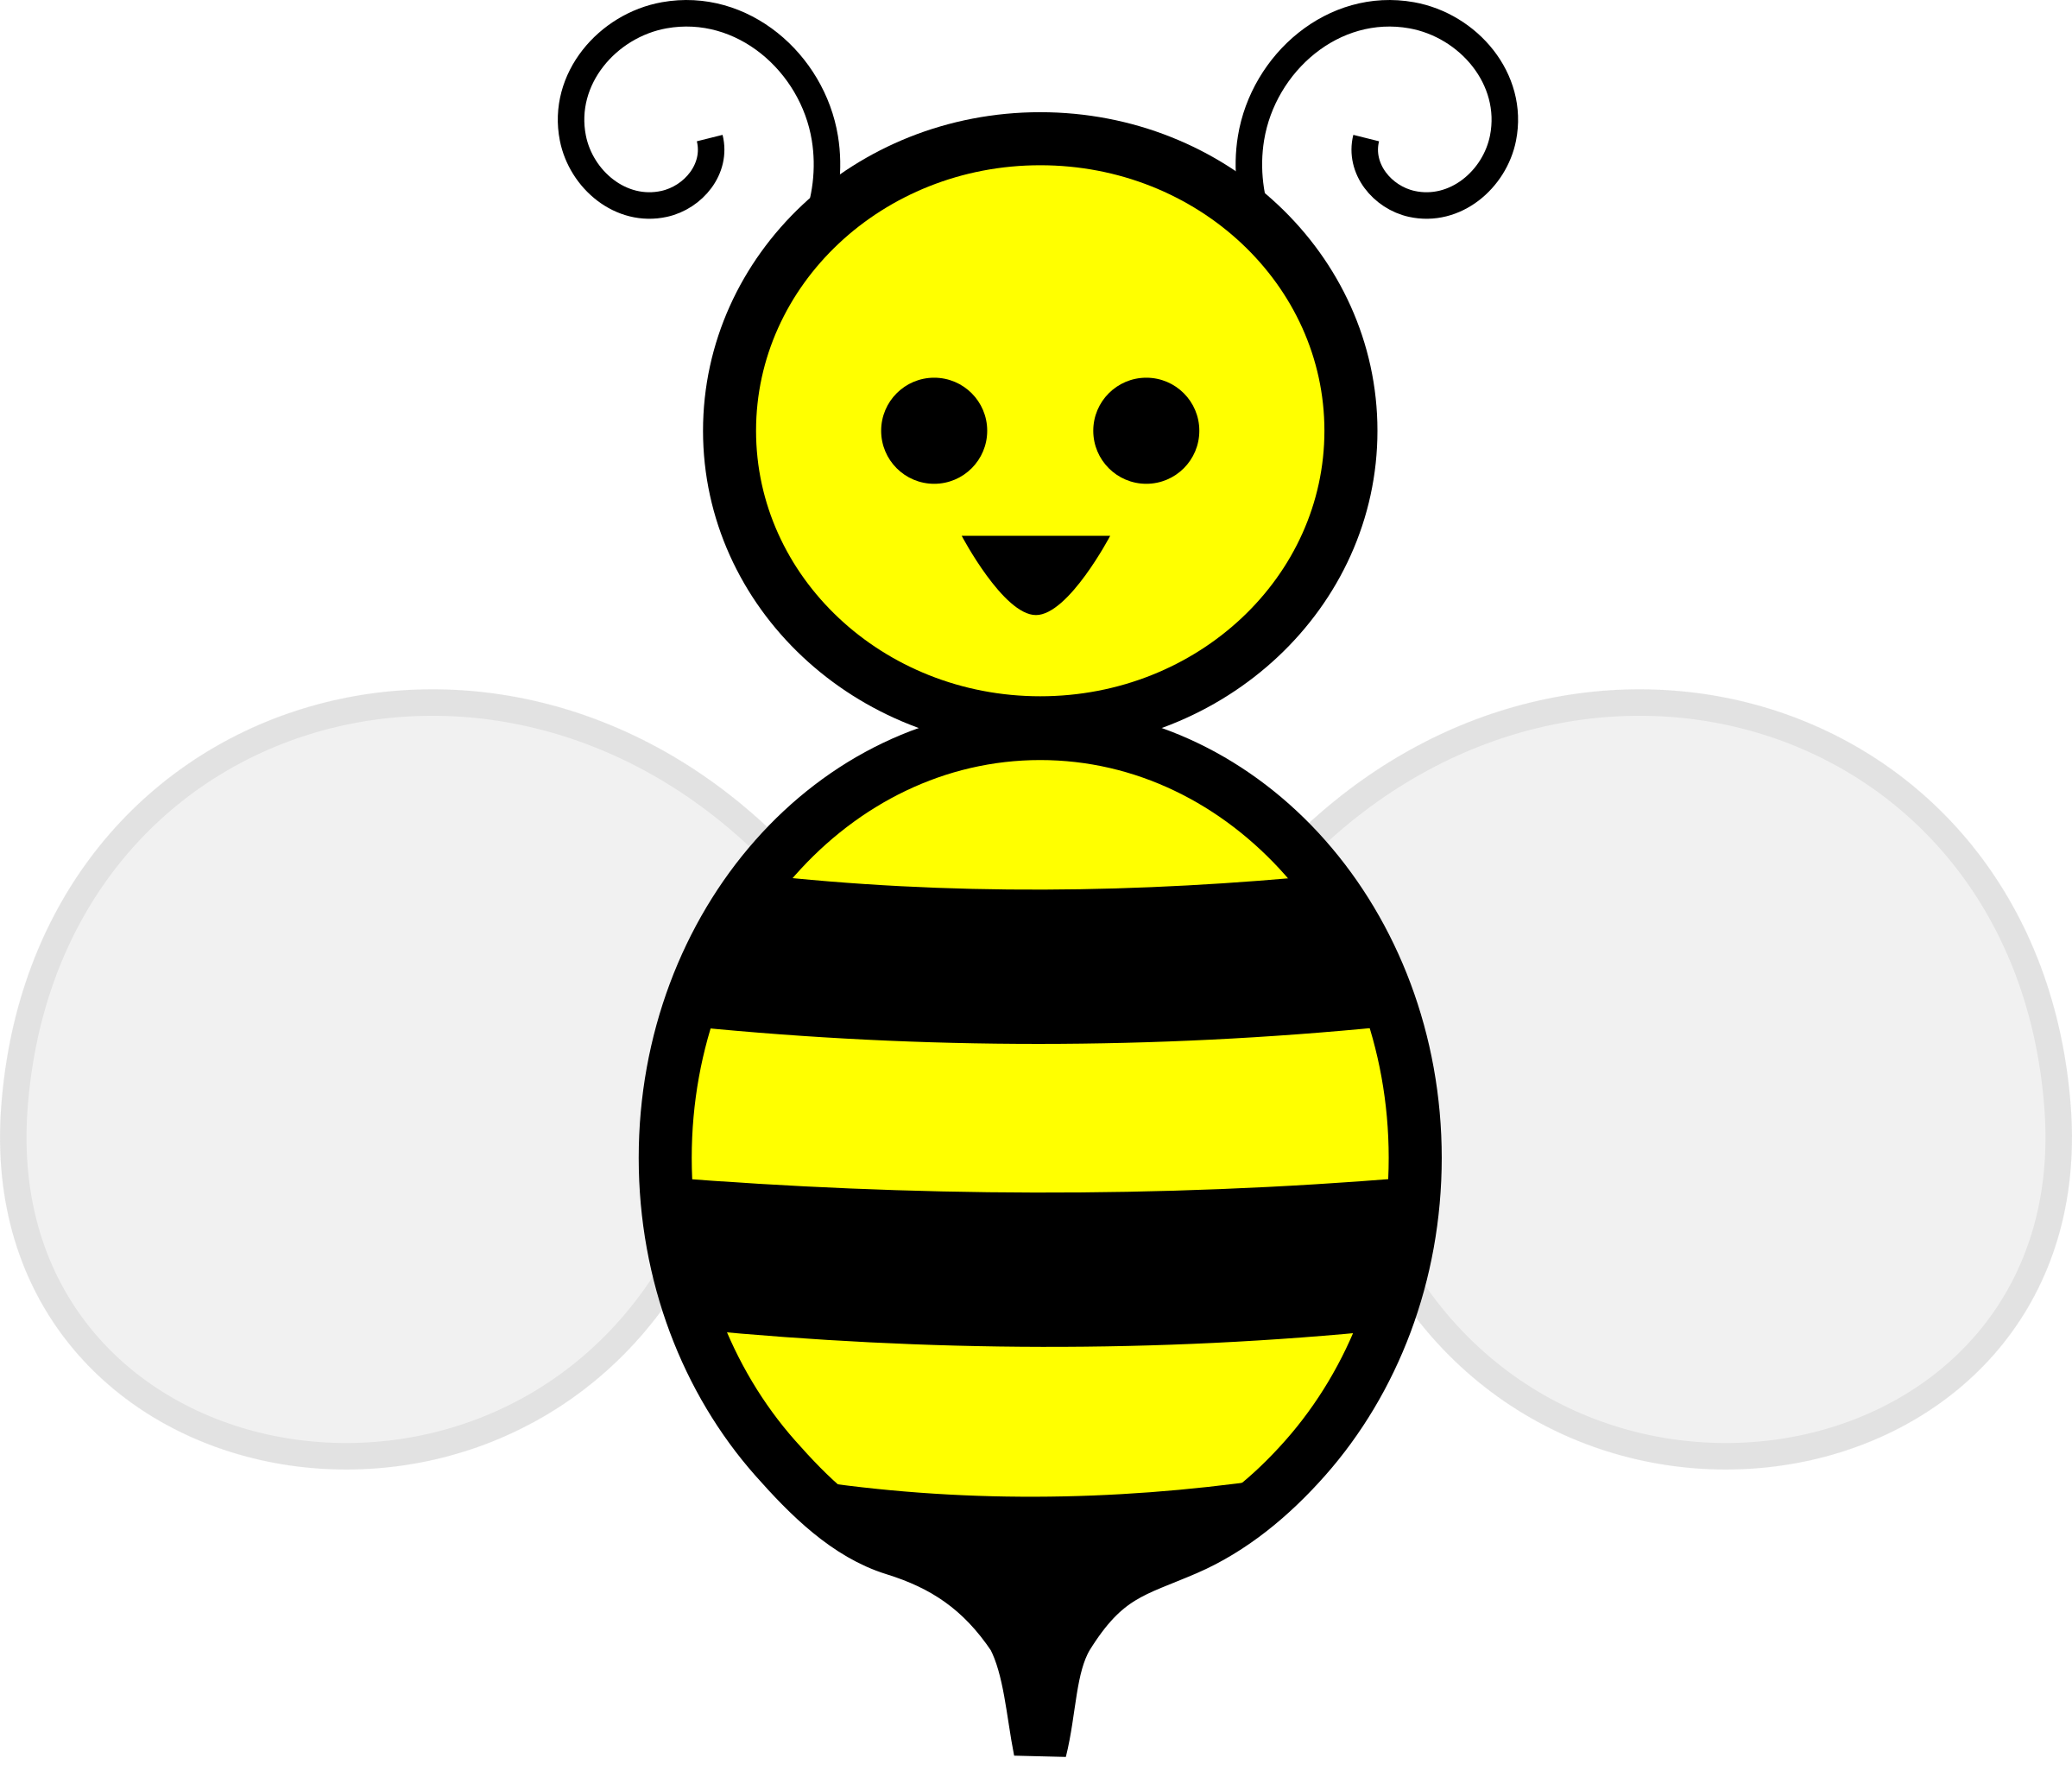 Icons png free and. Jar clipart honey bee